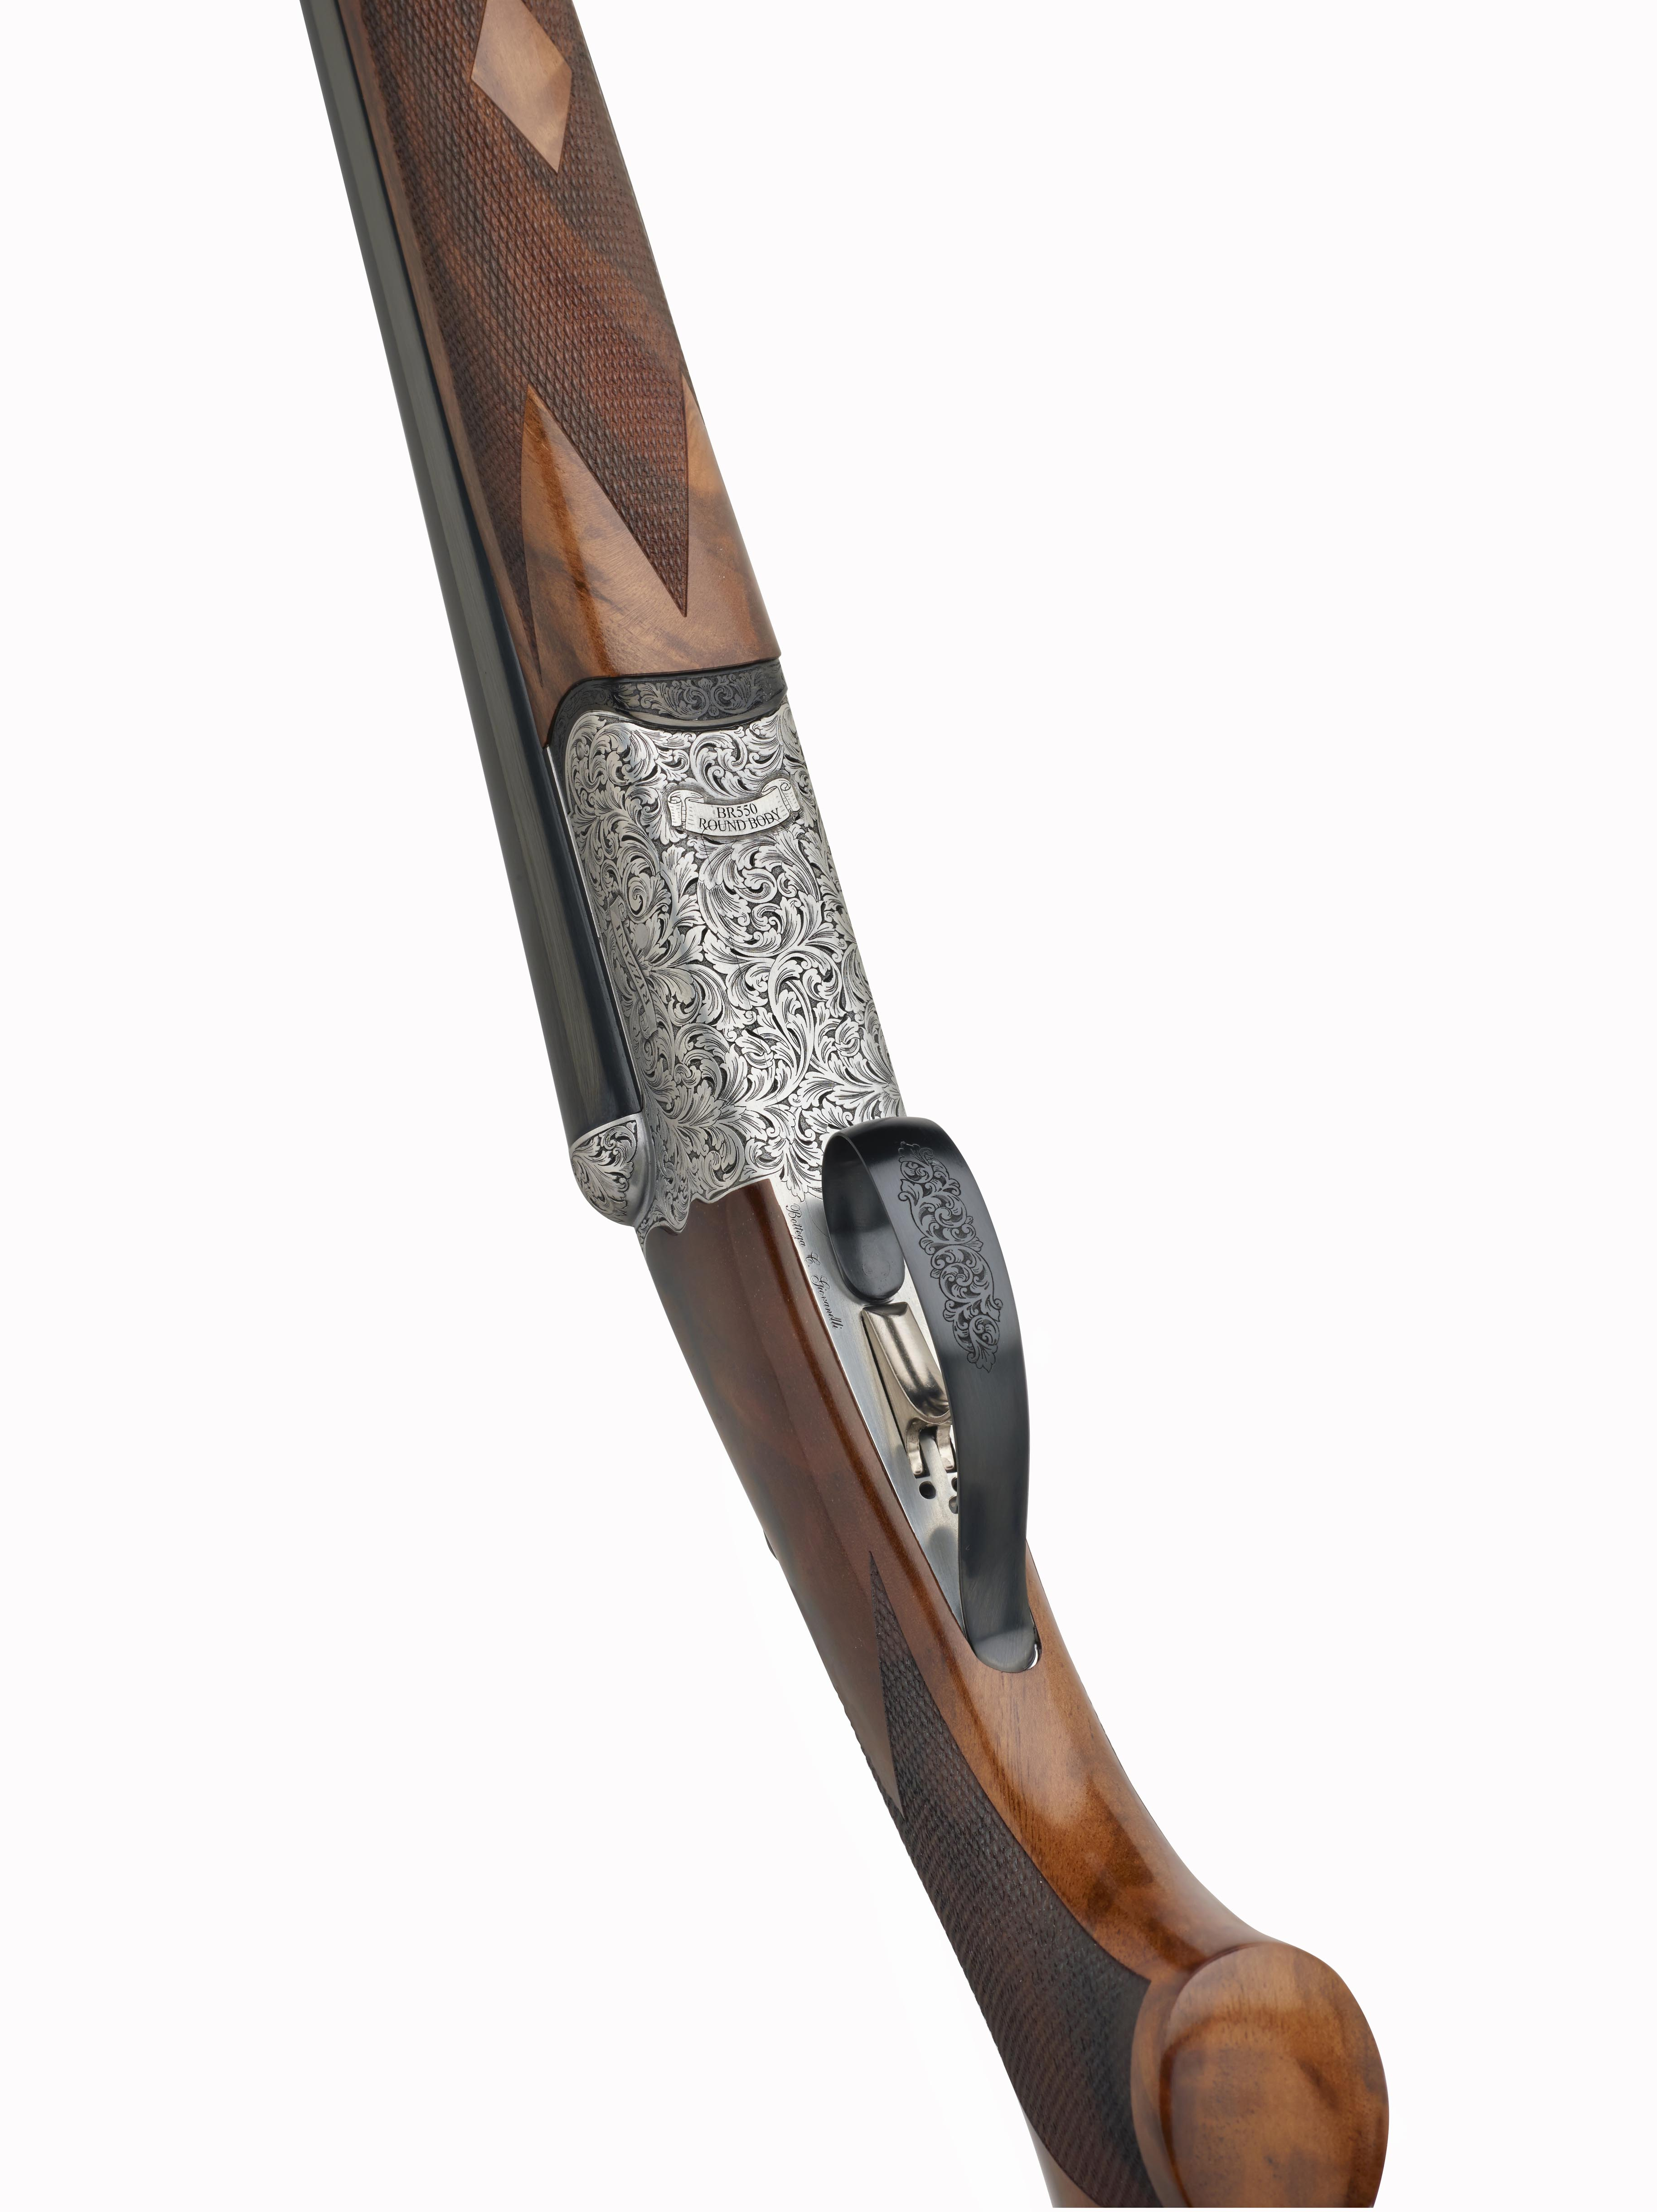 Rizzini BR 550 RB (Round Body) Side-by-Side Game Shotgun